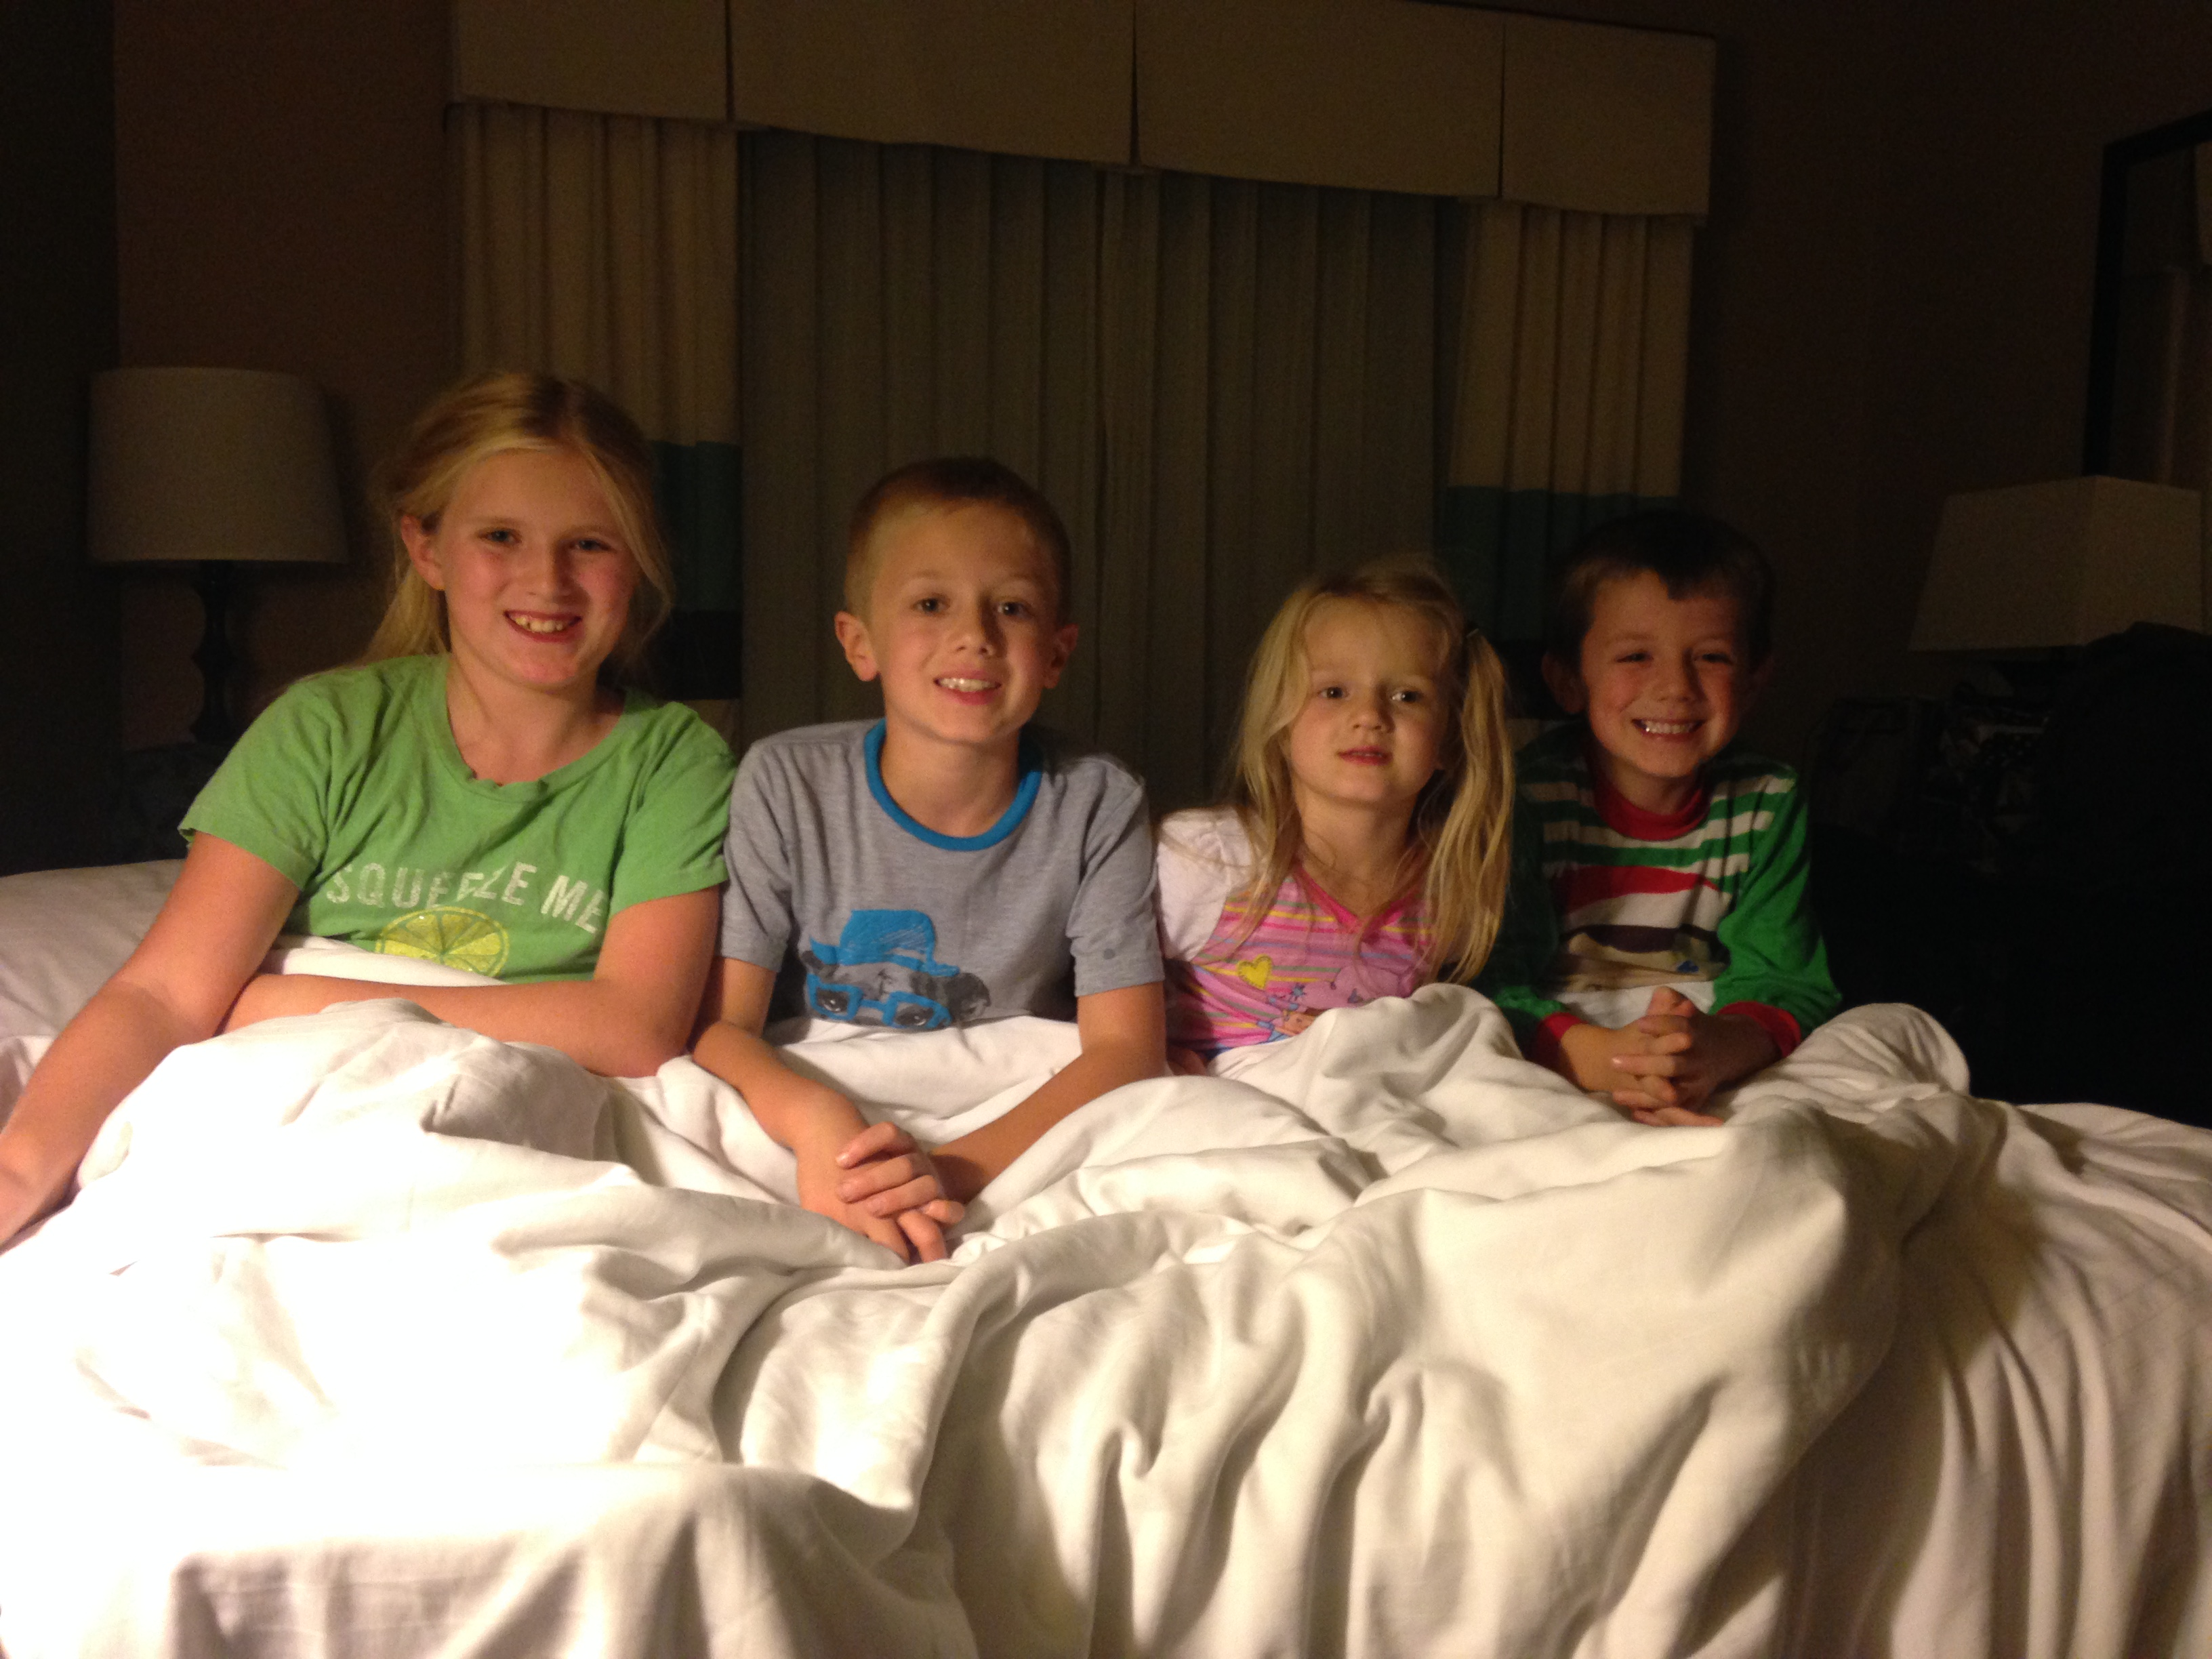 hotel tips with kids, hotels for lots of kids, sleep four kids in a hotel, hotels for large families, travel tips for kids